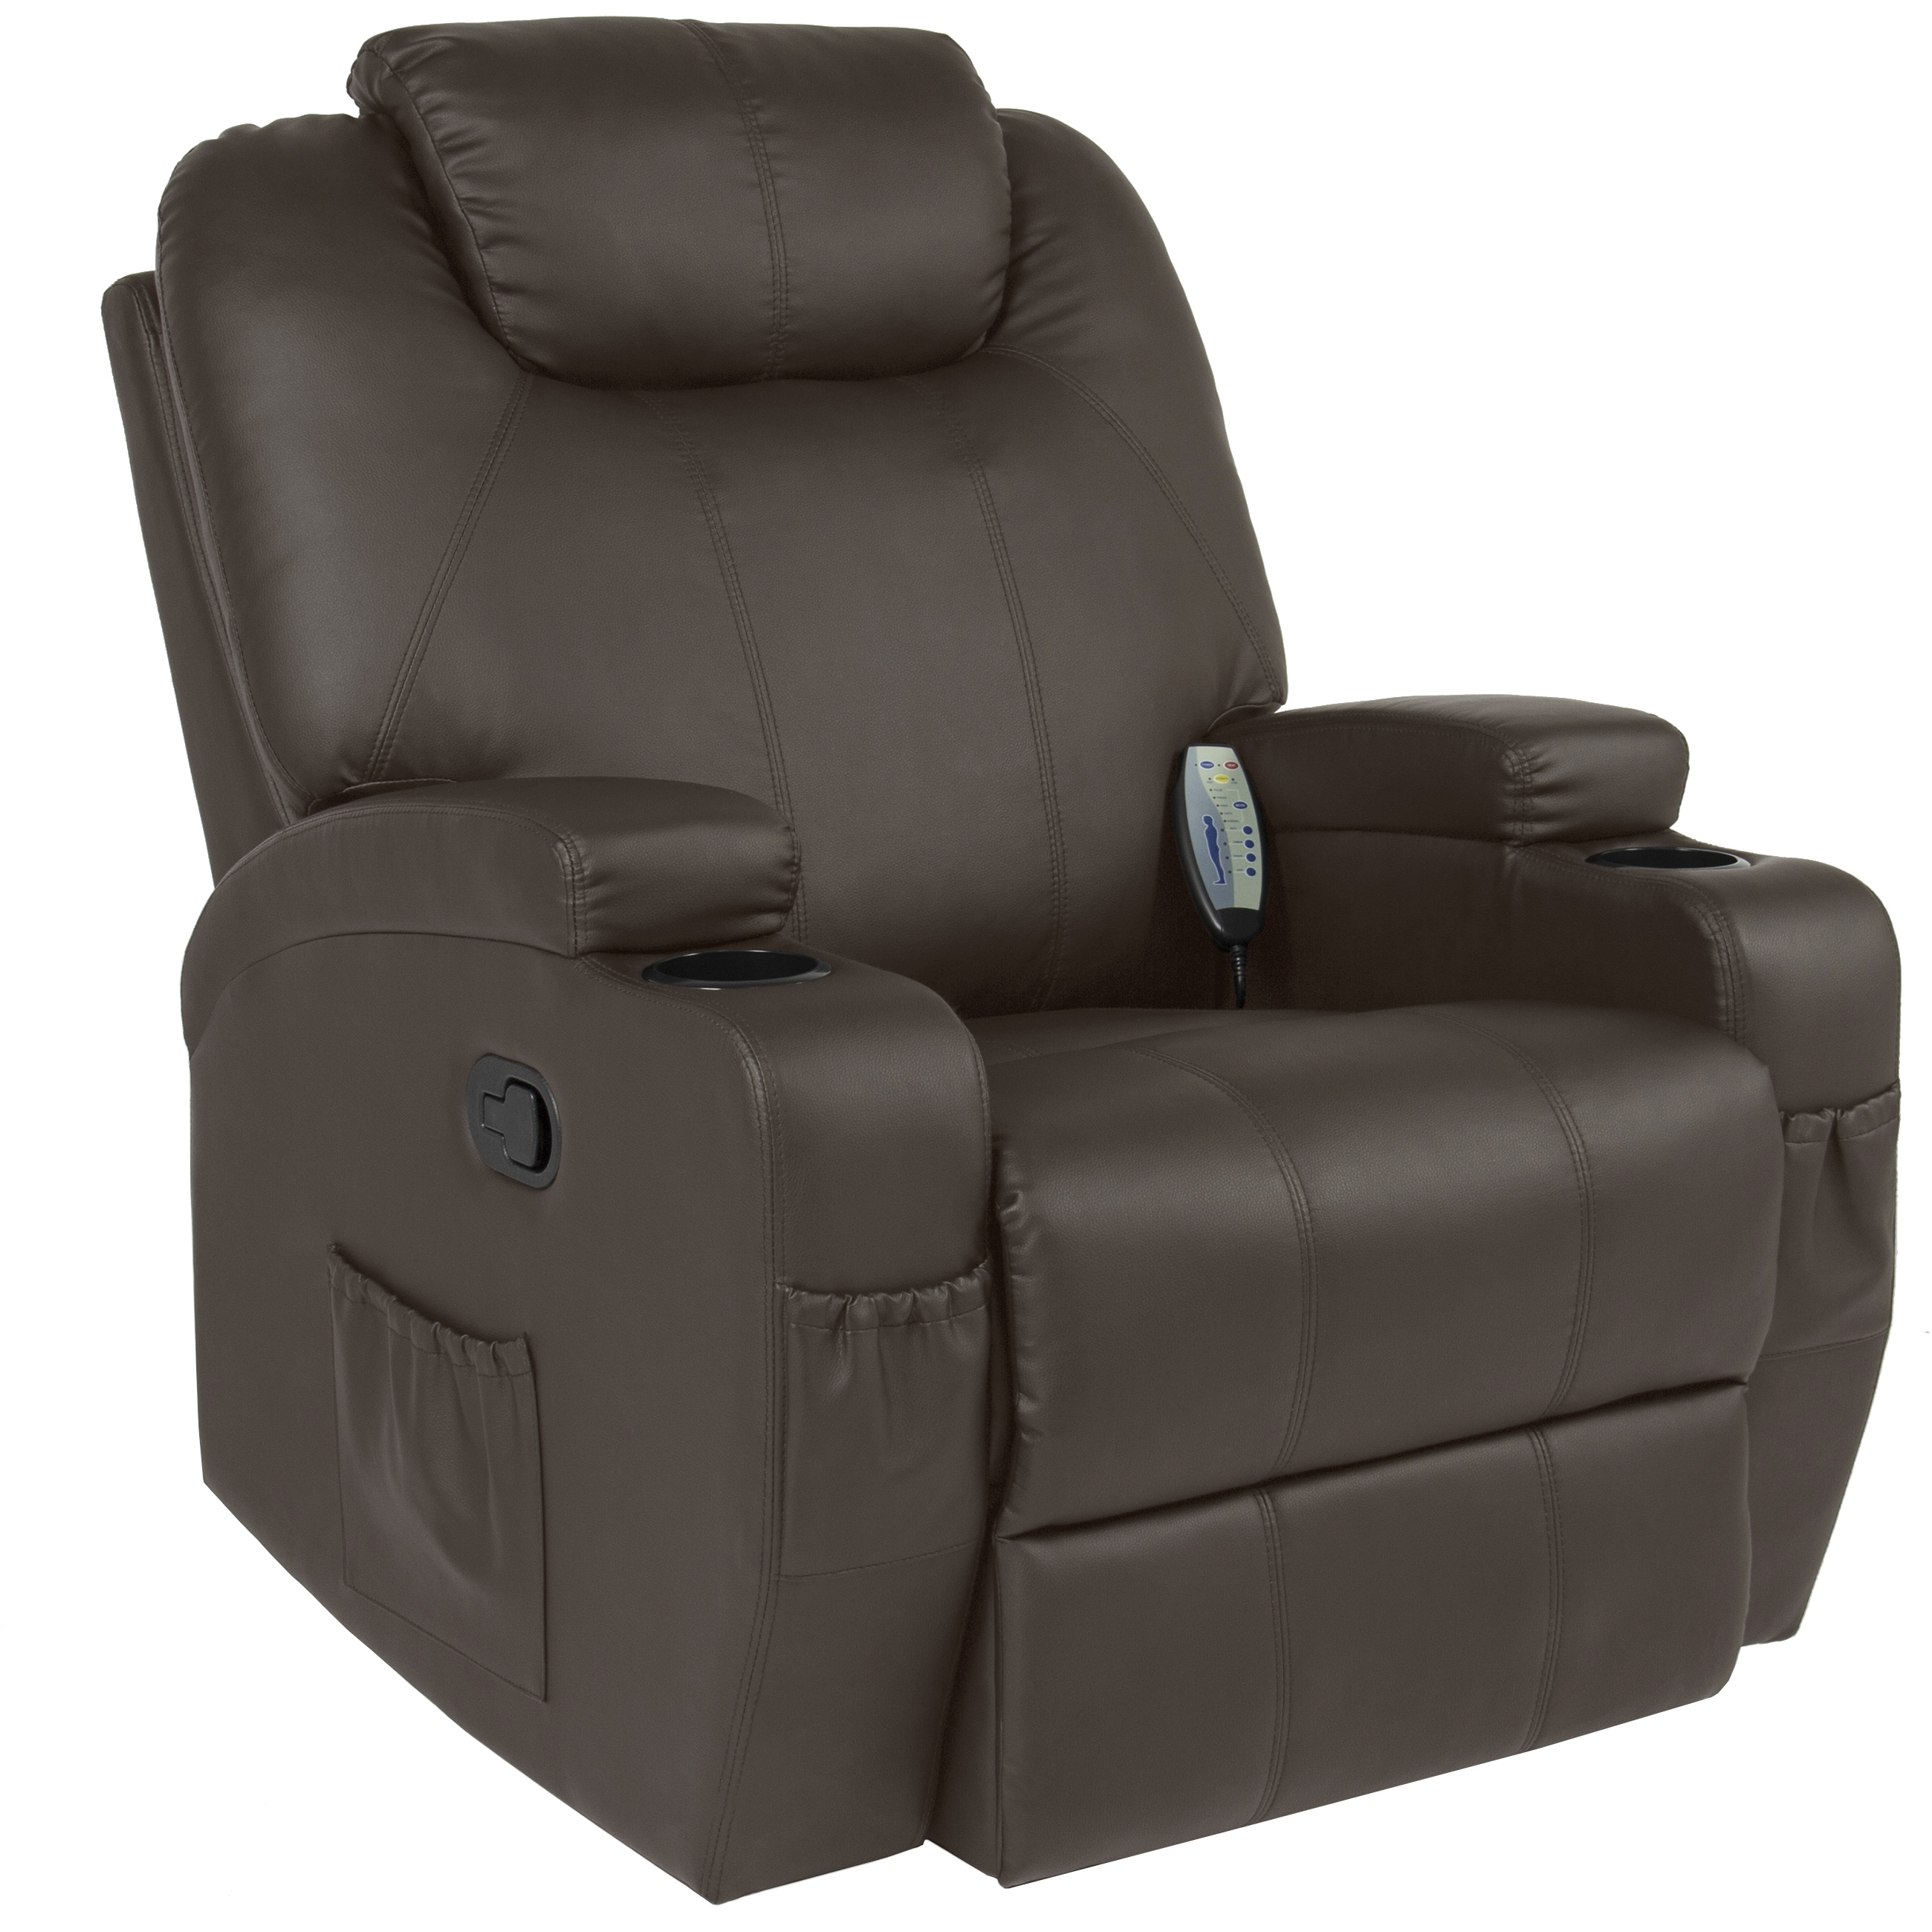 Best Choice Products Massage Recliner Sofa Chair Heated W Control Intended For Sofa Chair Recliner (Image 1 of 15)